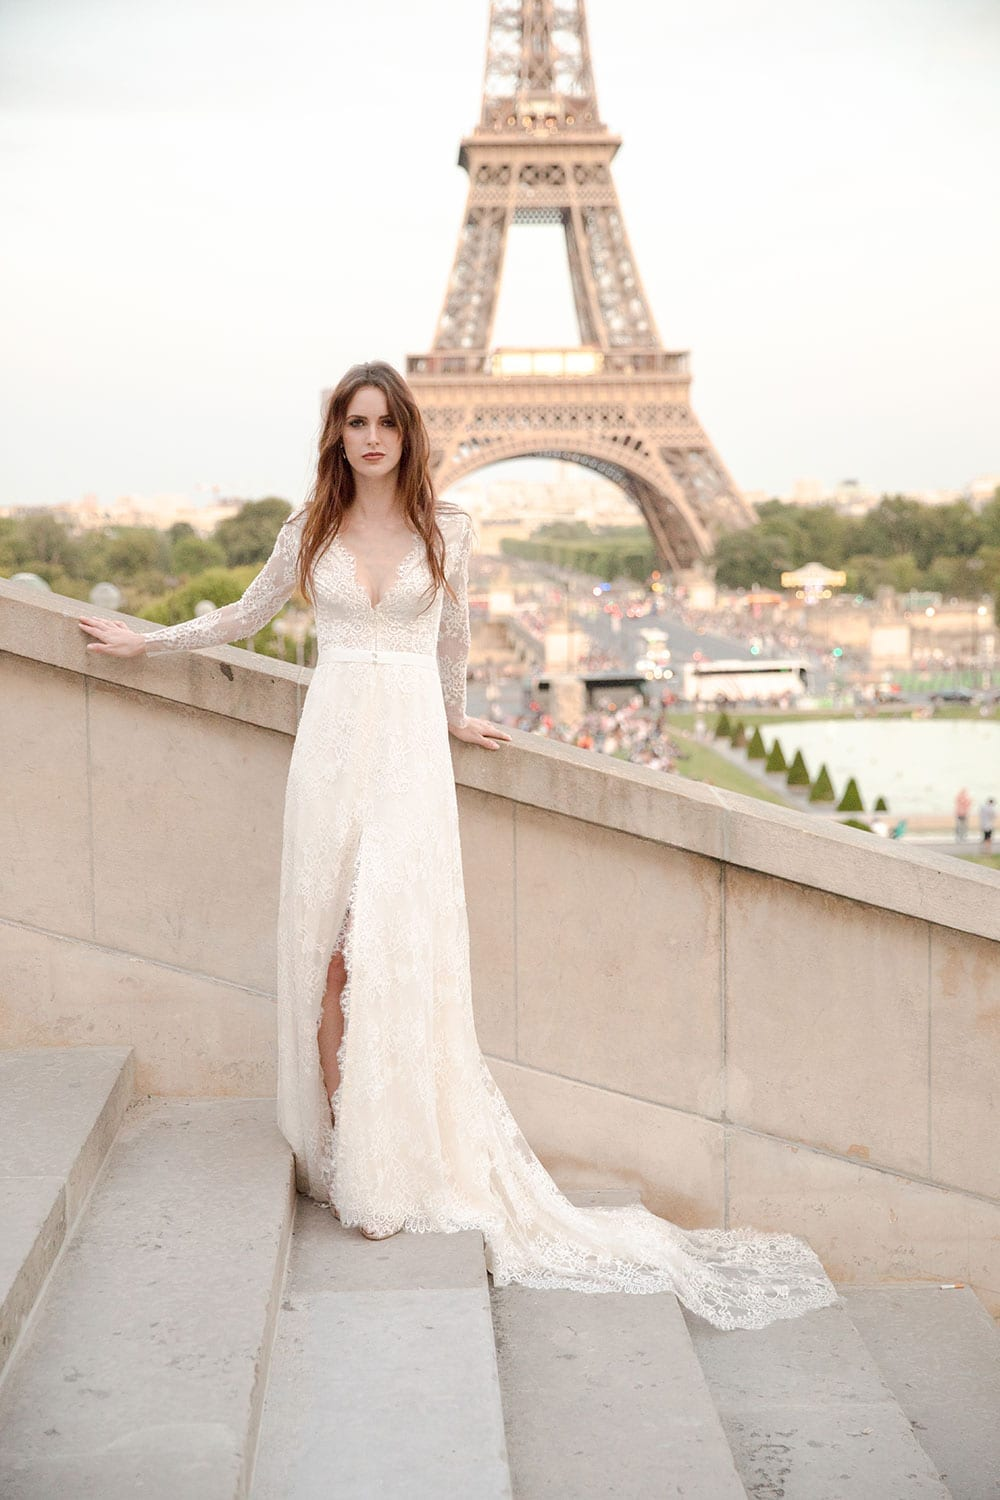 Model wearing Vinka Design Deanna Wedding Dress, a Lace Wedding Gown with Sleeves dress flowing down steps in front of the Eiffel Tower in Paris